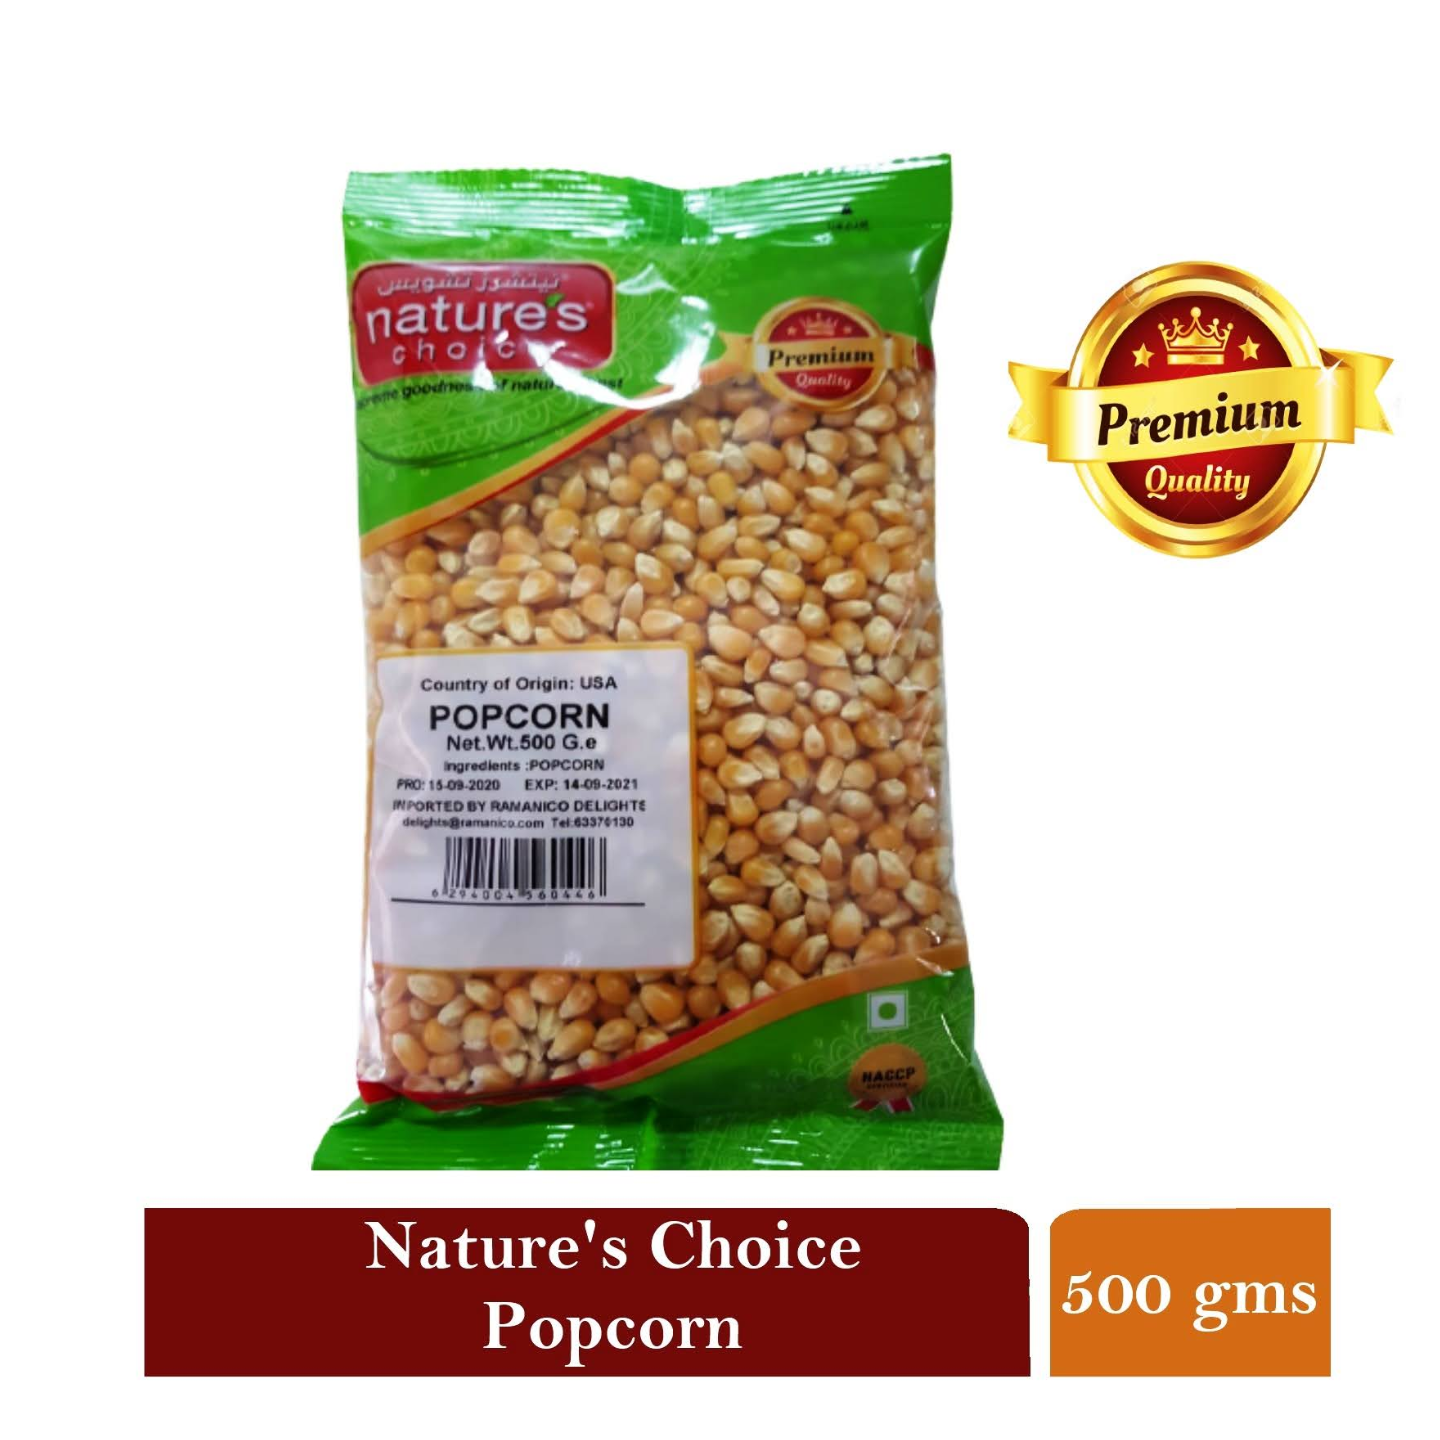 NATURES CHOICE PREMIUM QUALITY POPCORN 500G